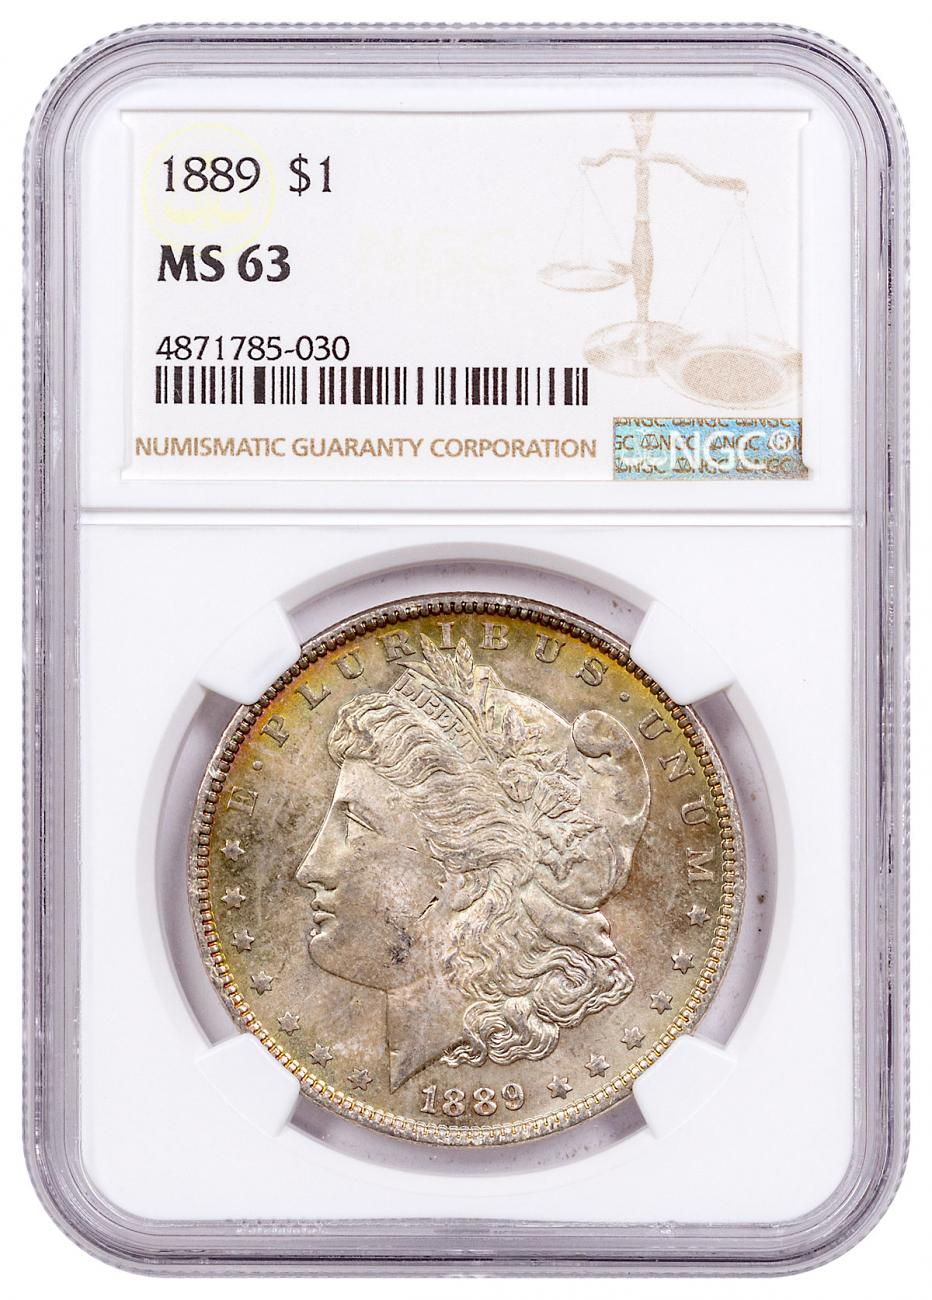 1889 Morgan Silver Dollar Toned NGC MS63 CPCR 5030